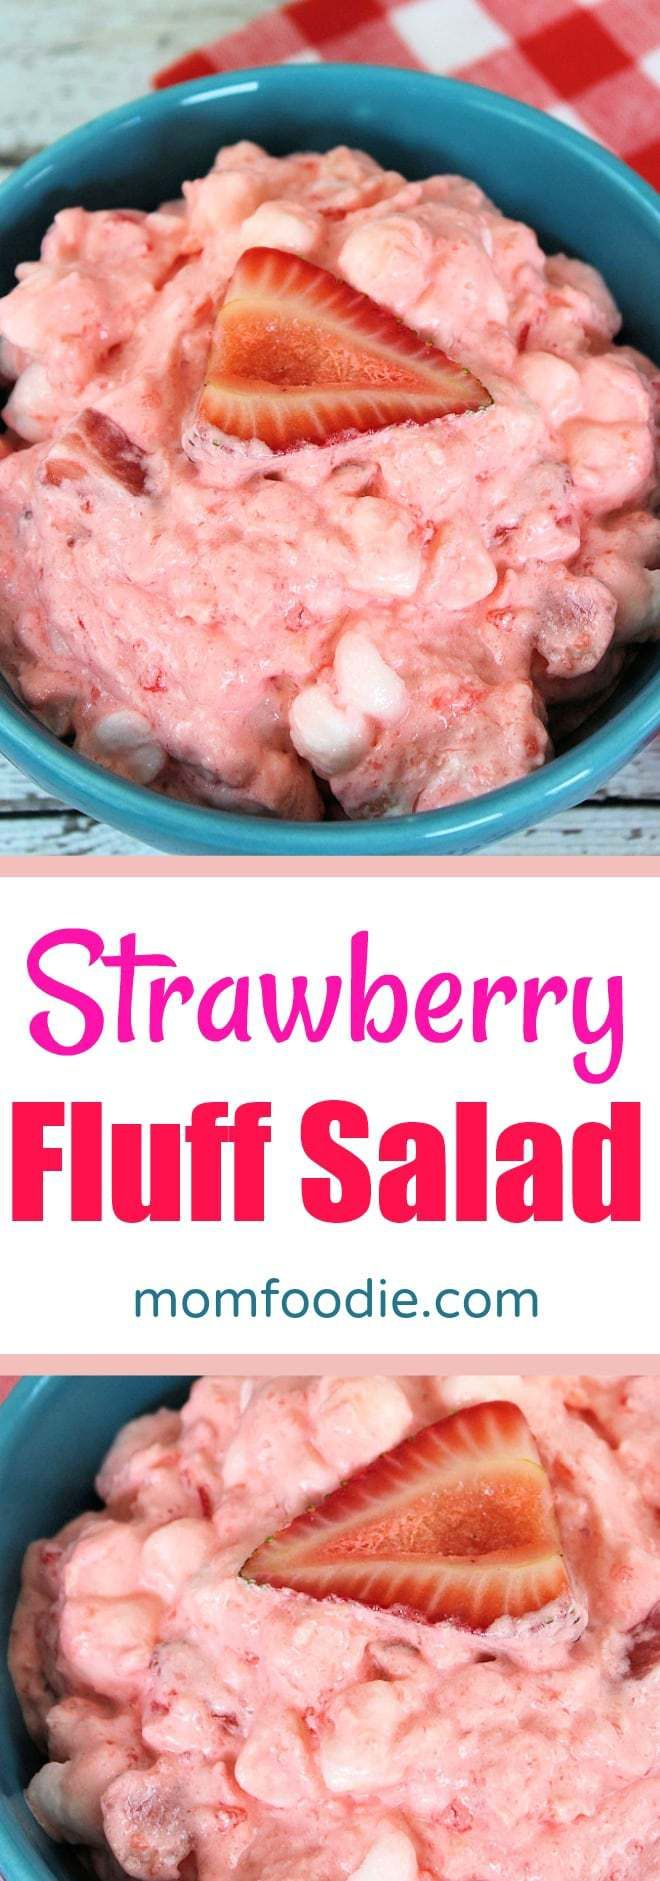 Strawberry Fluff Salad - An easy strawberry jello salad recipe, perfect for party's. This pink fluff is a nice Valentine's dessrt idea too.